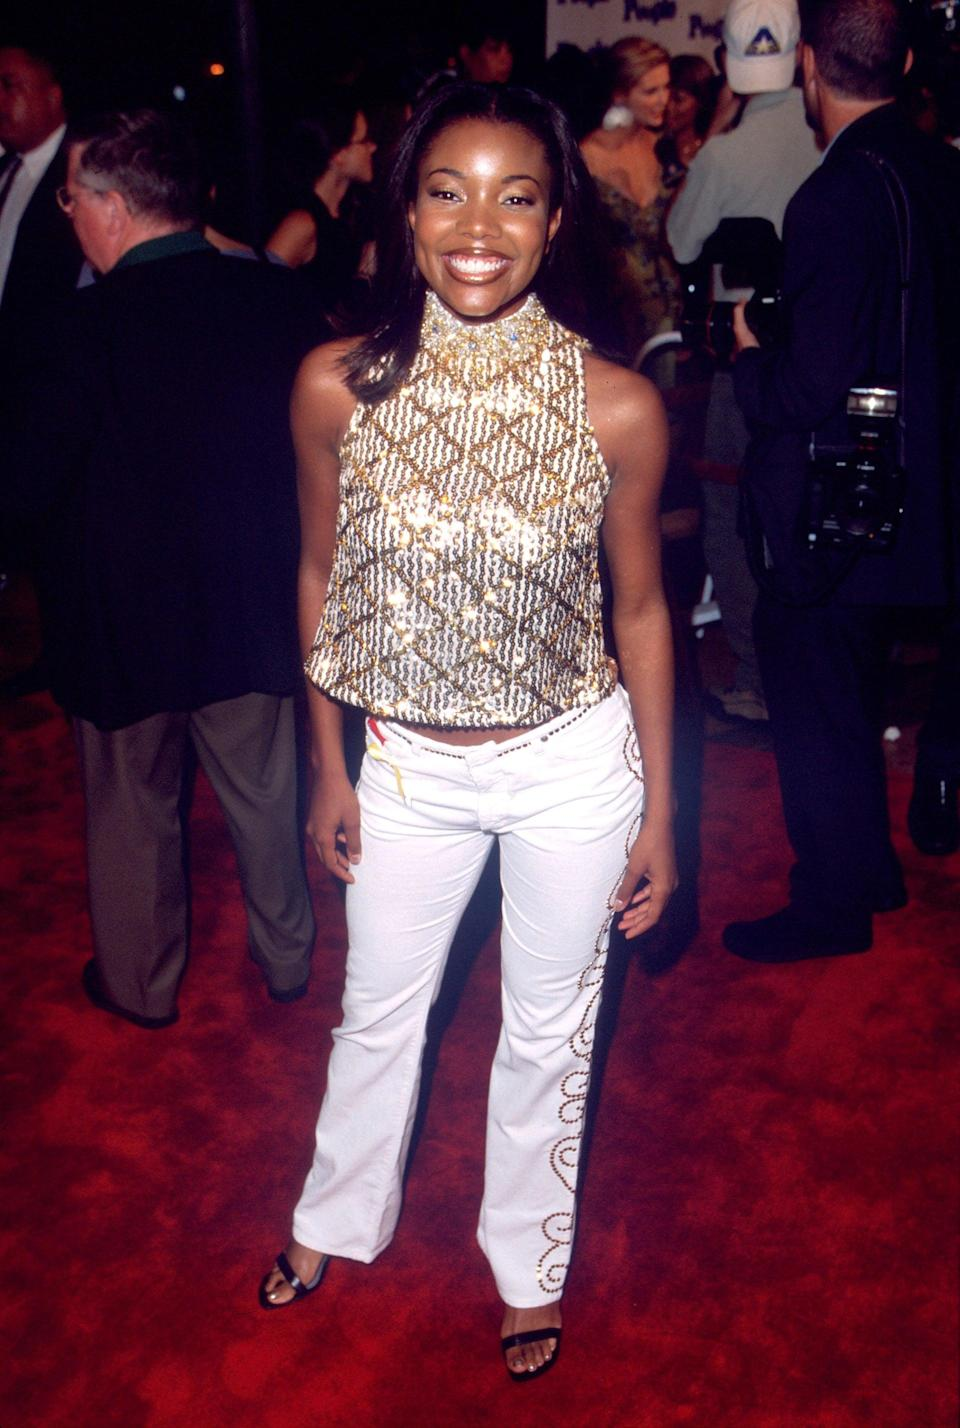 <p>Gabrielle played Isis, captain of the East Compton Clovers cheer team. She arrived on the red carpet in the ultimate 2000s look consisting of a shift halter top covered in sequins and beads coordinated with low-rise gold studded flares and heeled sandals.</p>